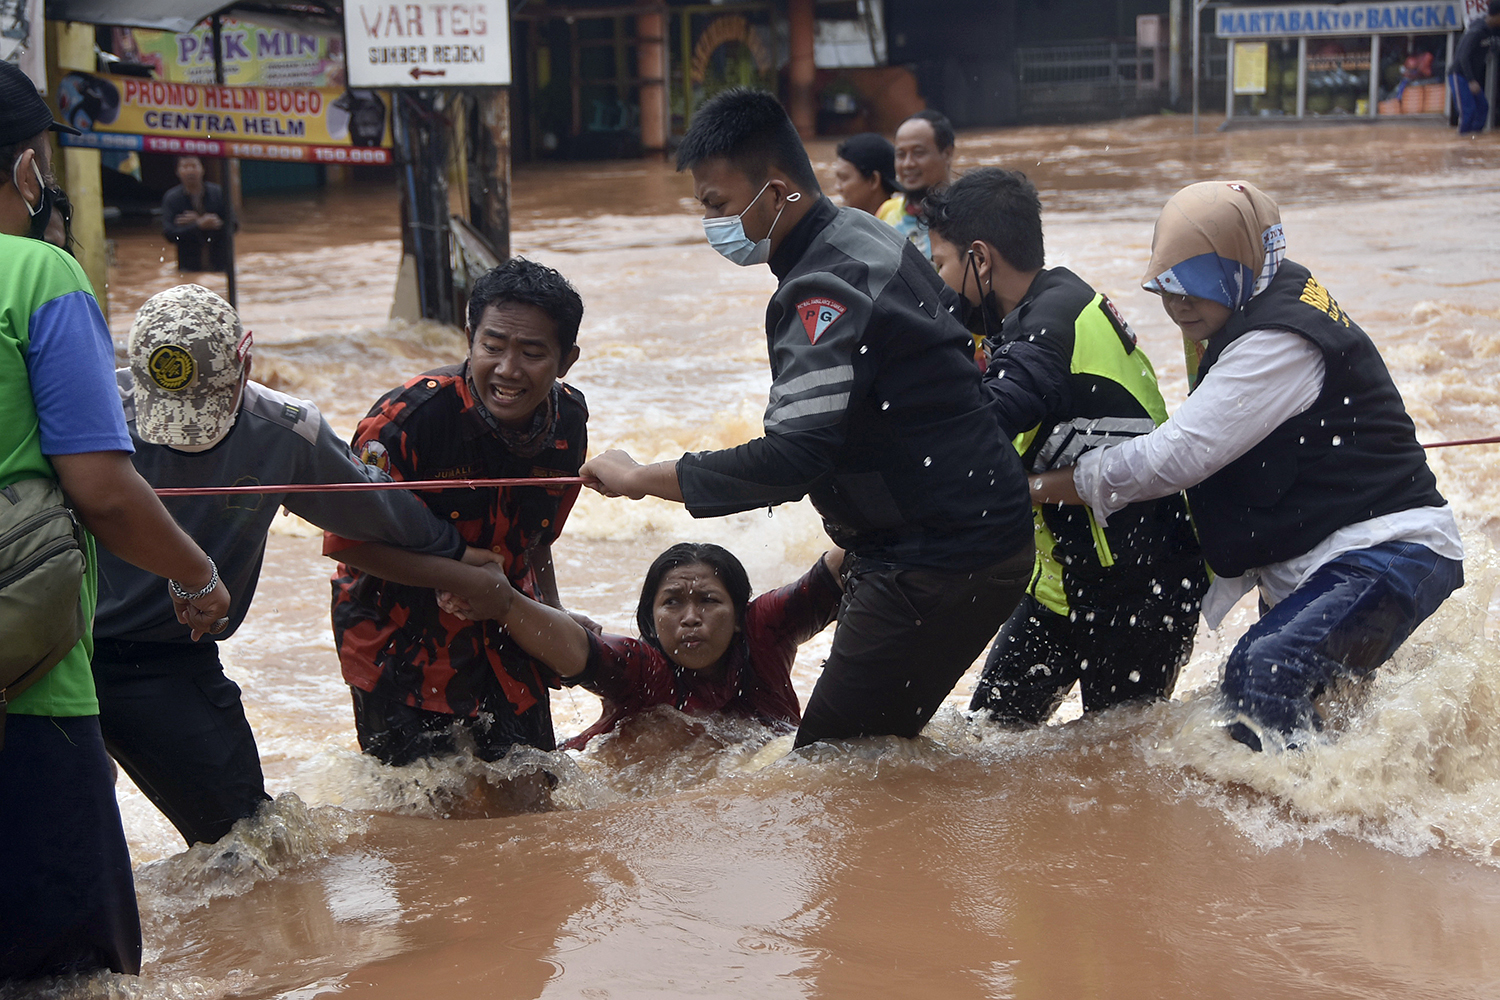 Rescue personnel assist residents in Bekasi, West Java, Indonesia, during massive flooding Feb. 20. REZAS/AFP via Getty Images